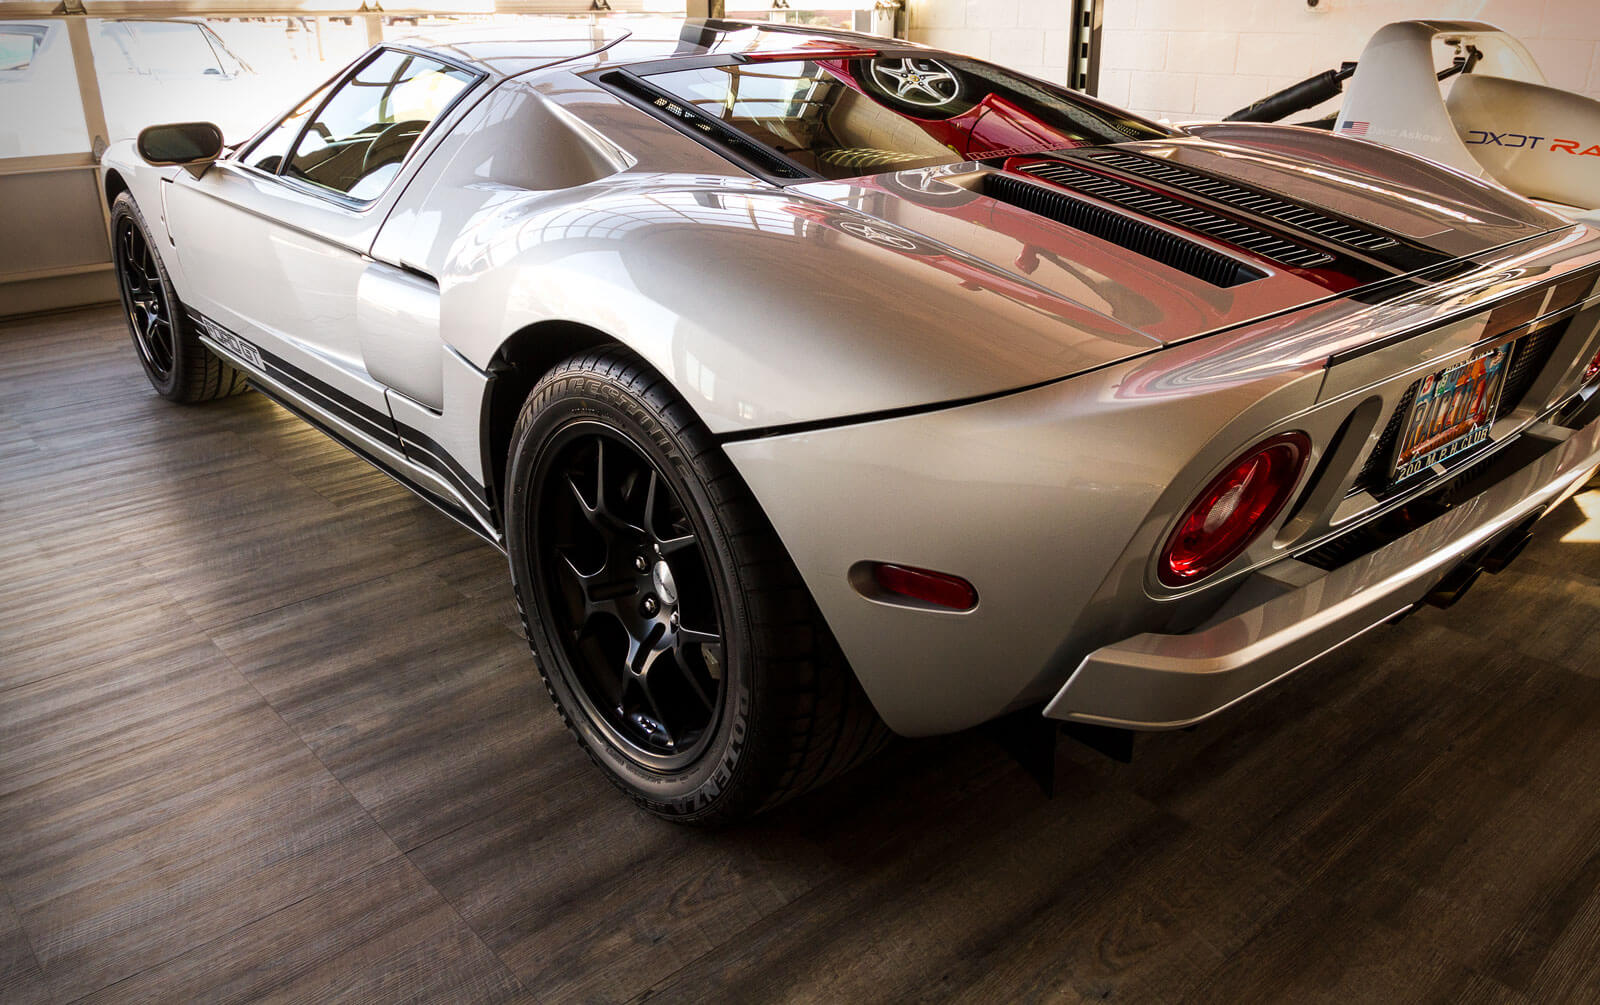 Ford GT 500 on Smoked Oak, product featured in the SEMA News Magazine